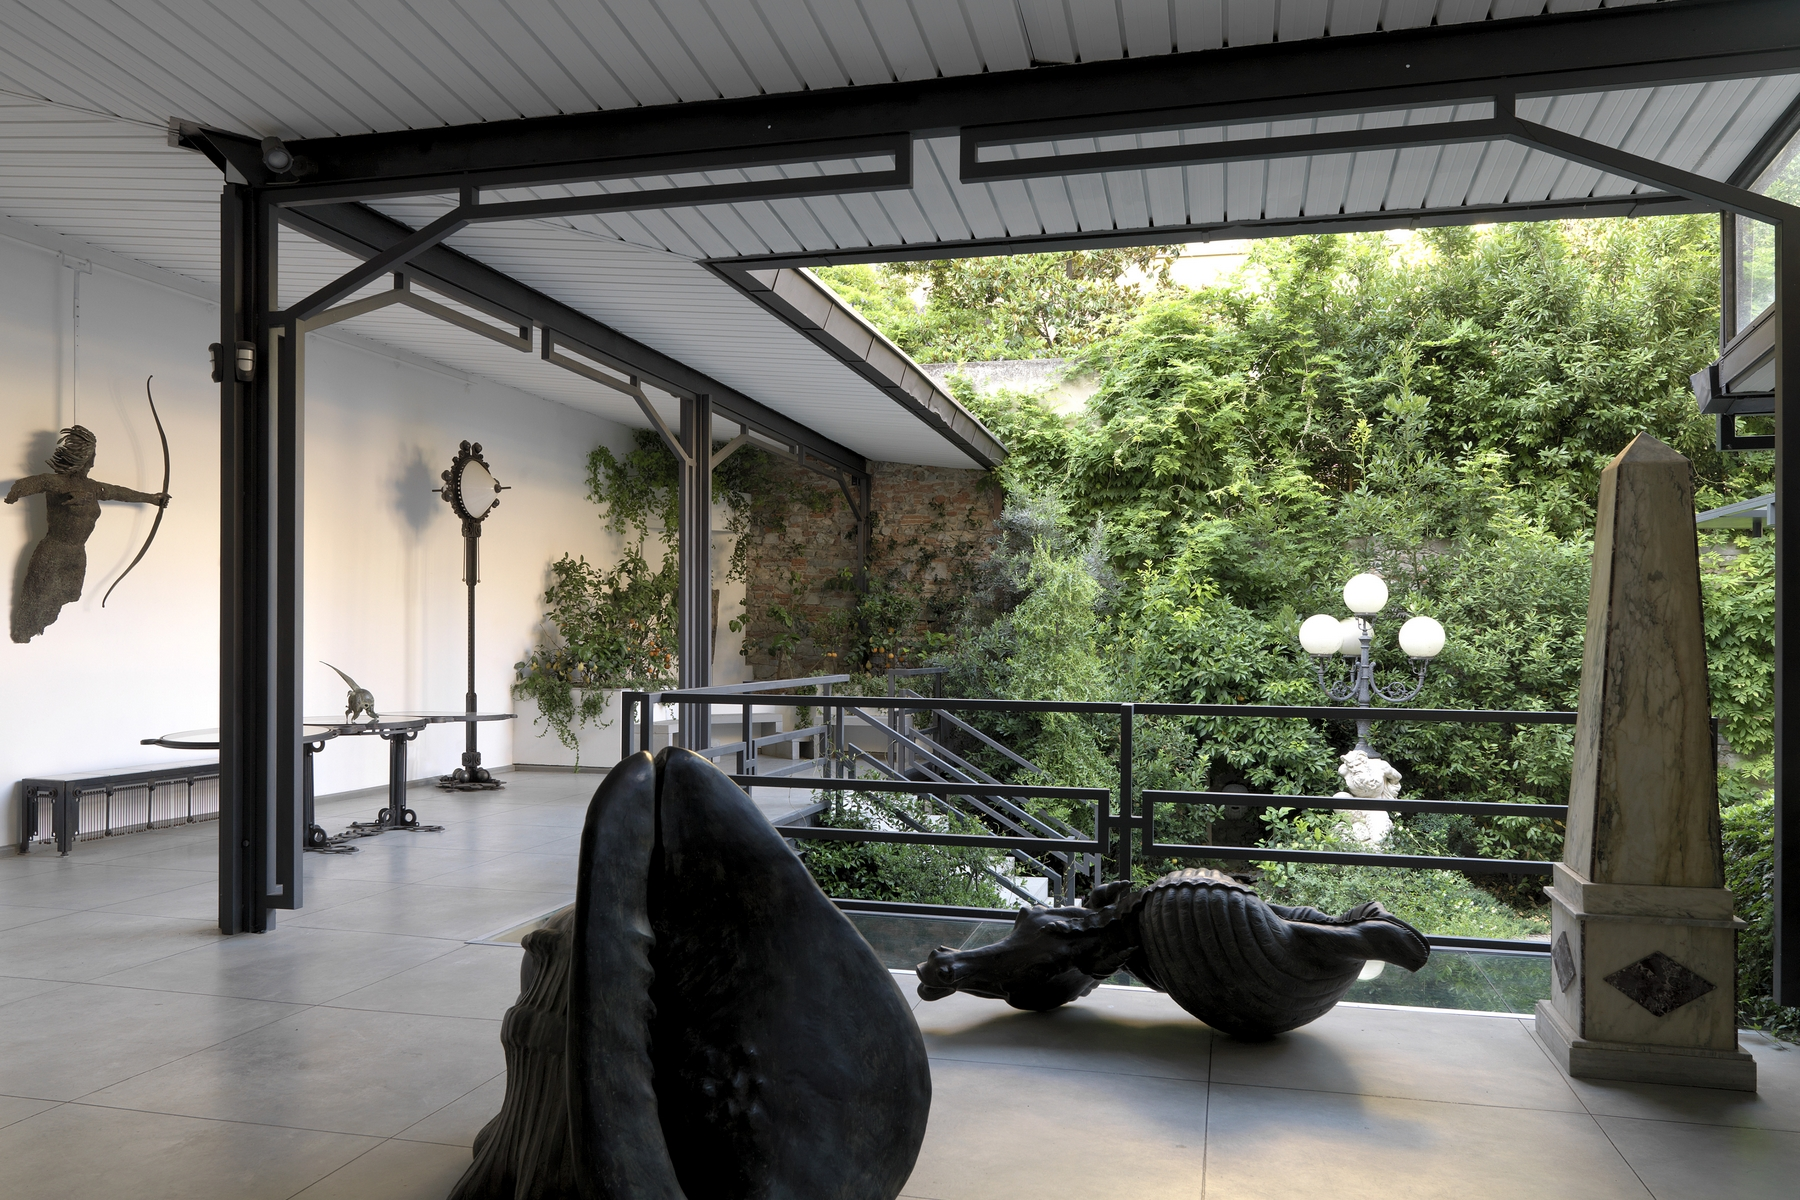 Additional photo for property listing at Design townhouse in historic building Via Magliabechi Firenze, Florence 50100 Italy